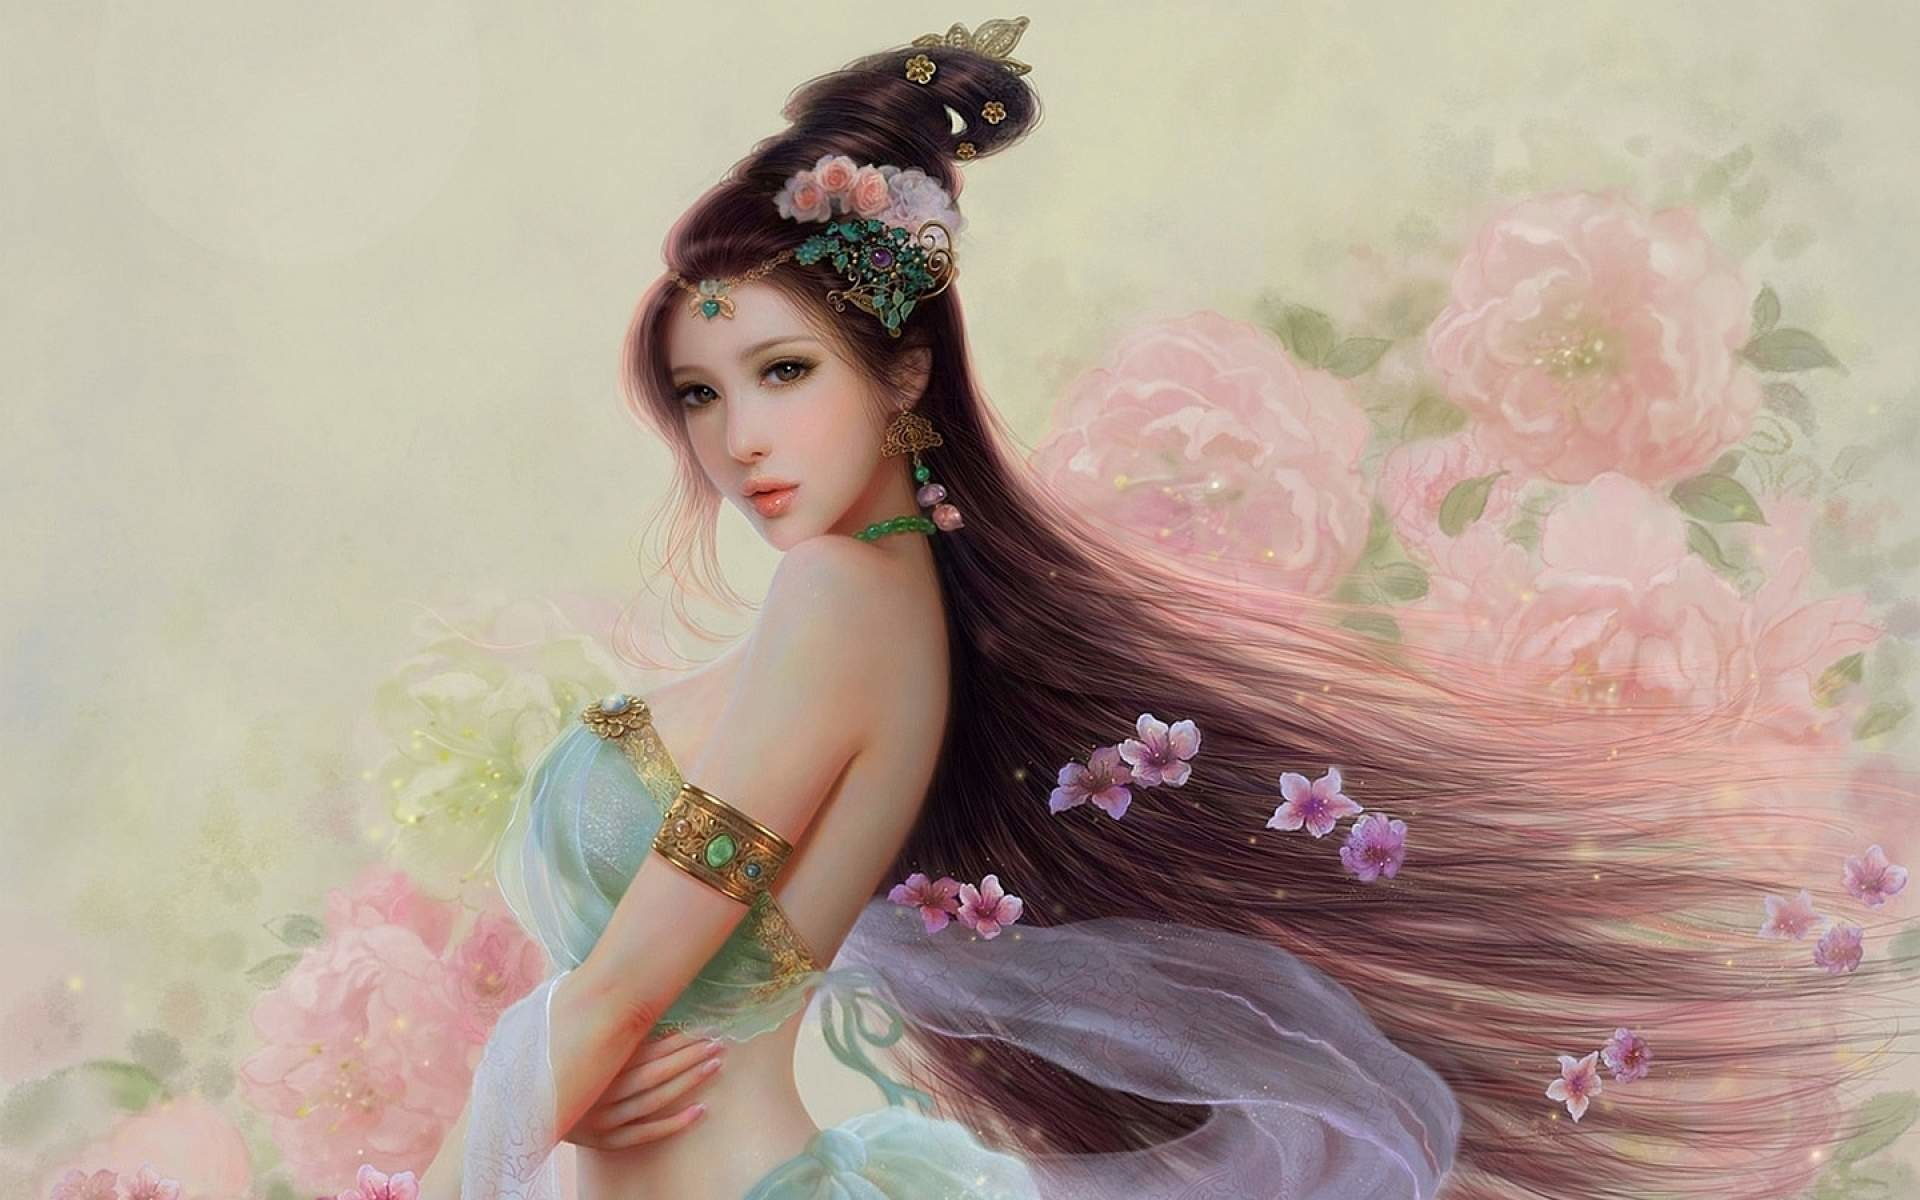 1920x1200 Beautiful Fantasy Girl Painting Wallpaper